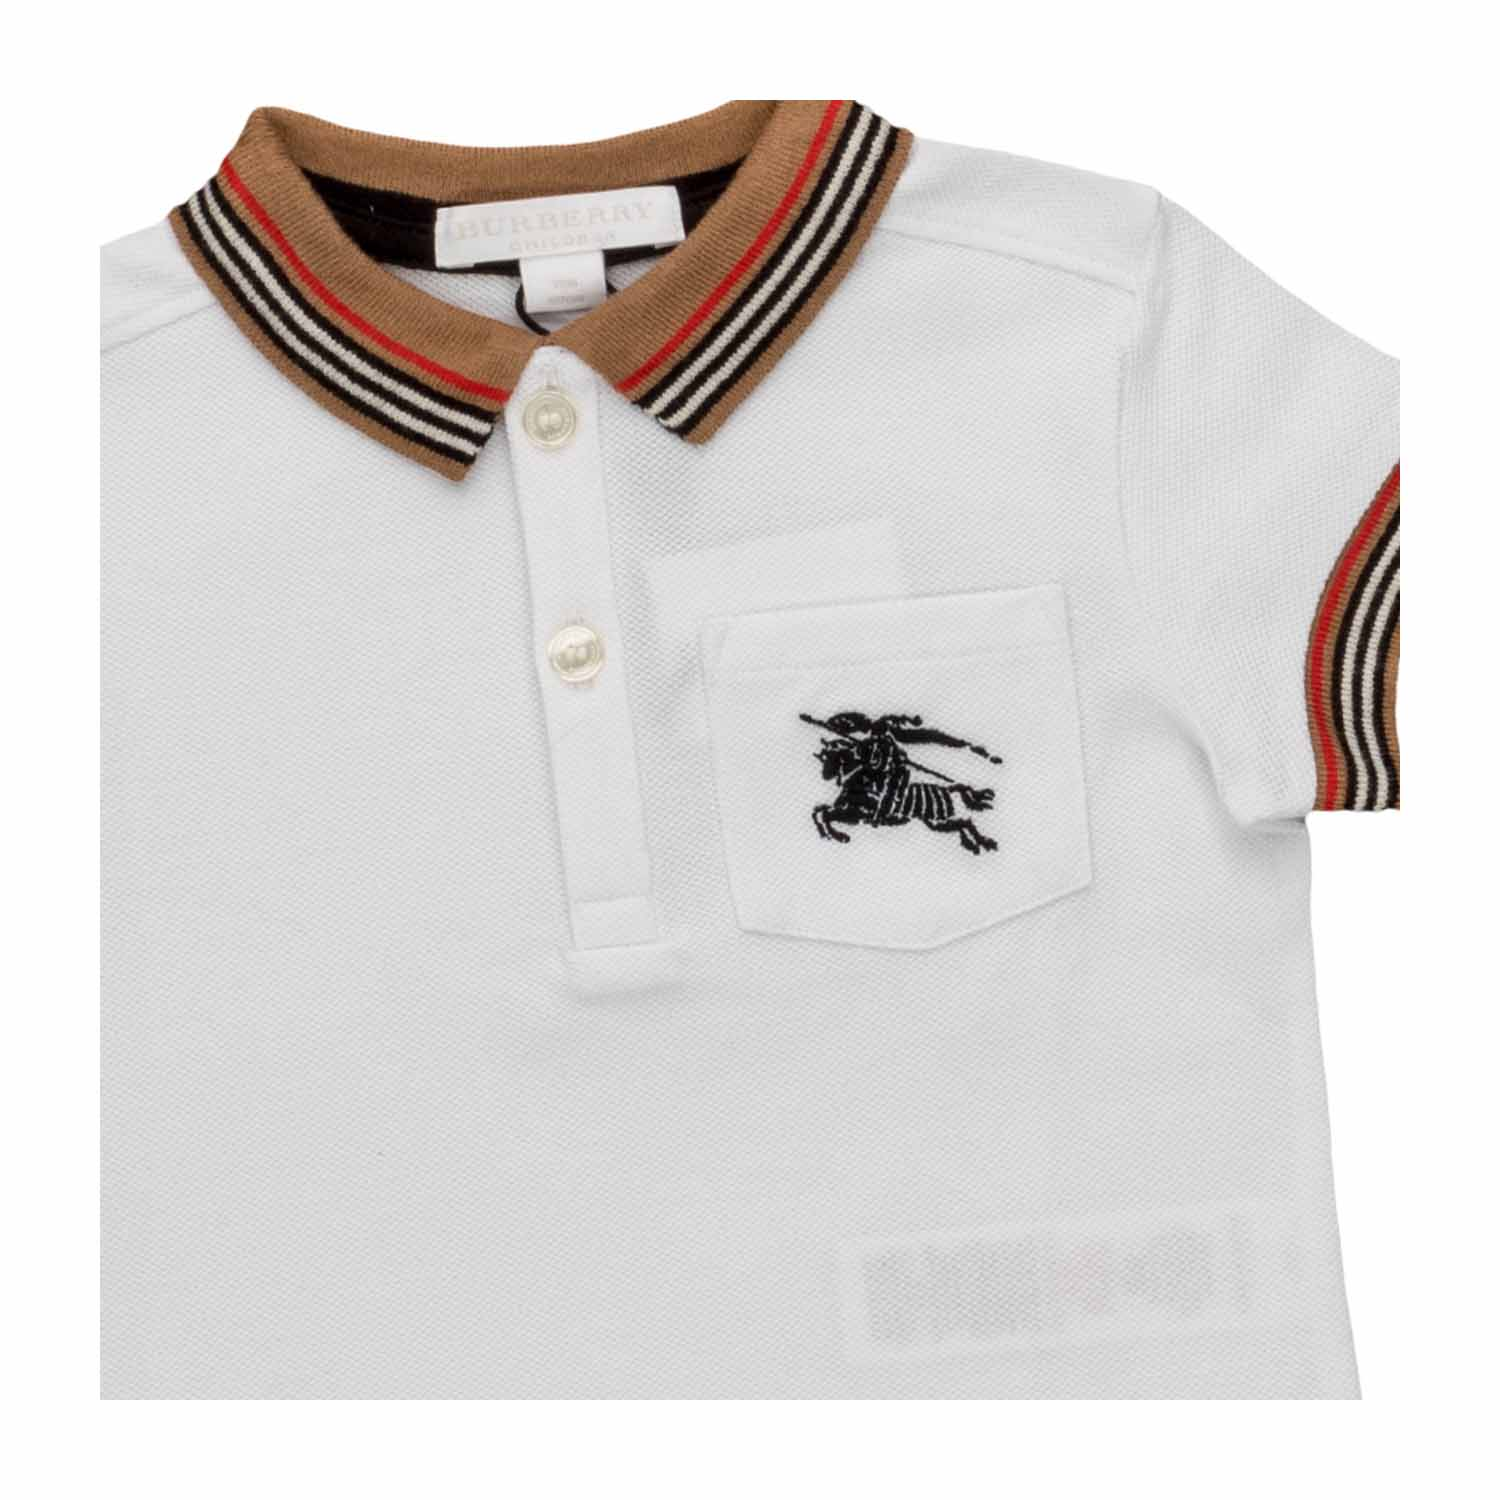 df6a538a7 Burberry - Logo Polo Shirt For Baby Boys - annameglio.com shop online